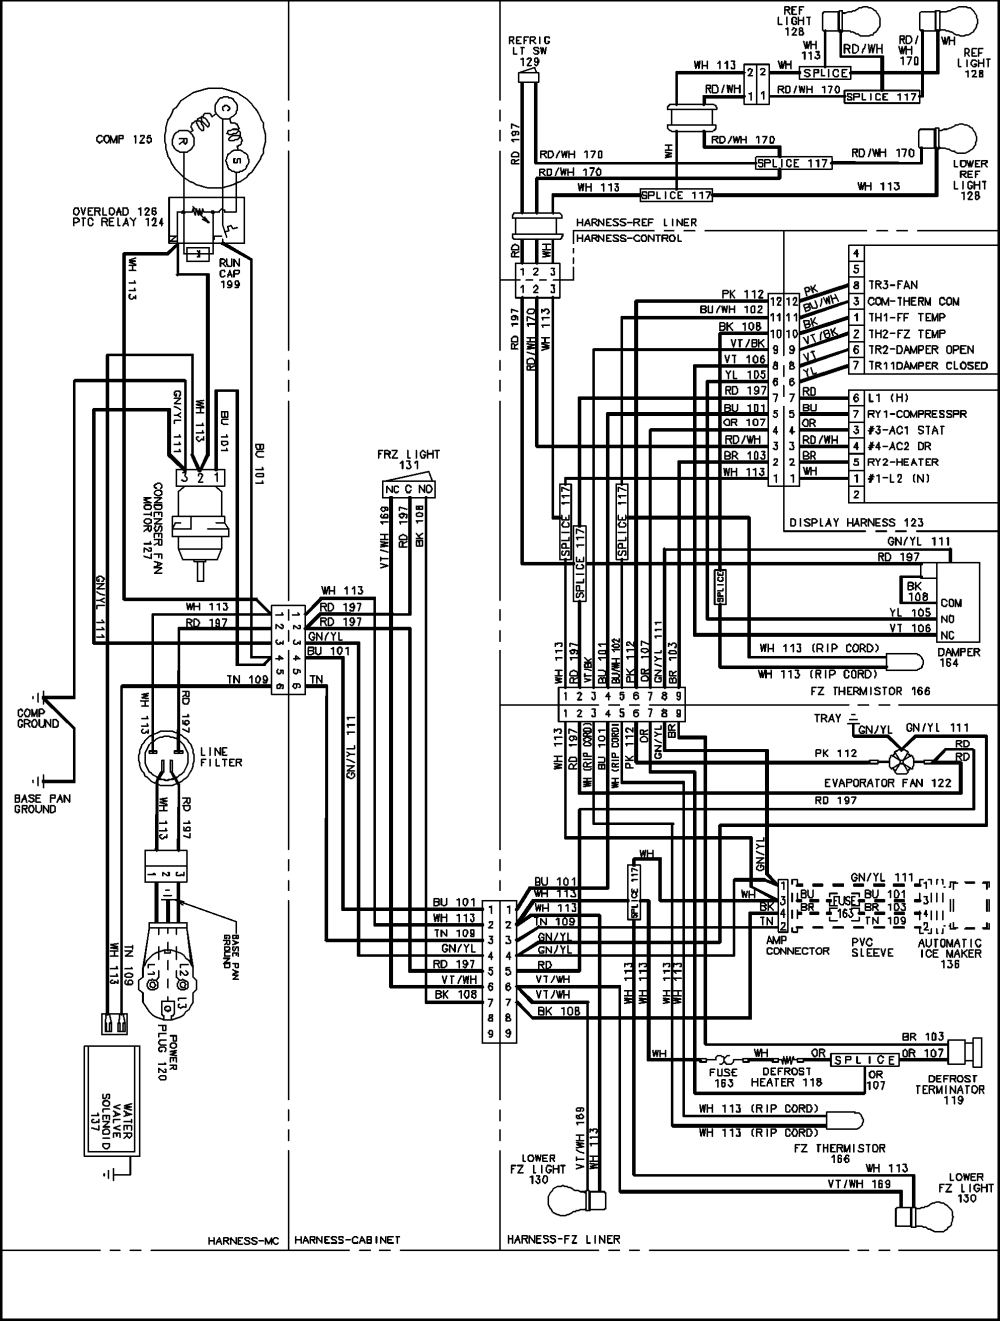 medium resolution of maytag refrigerator compressor wiring diagram images gallery